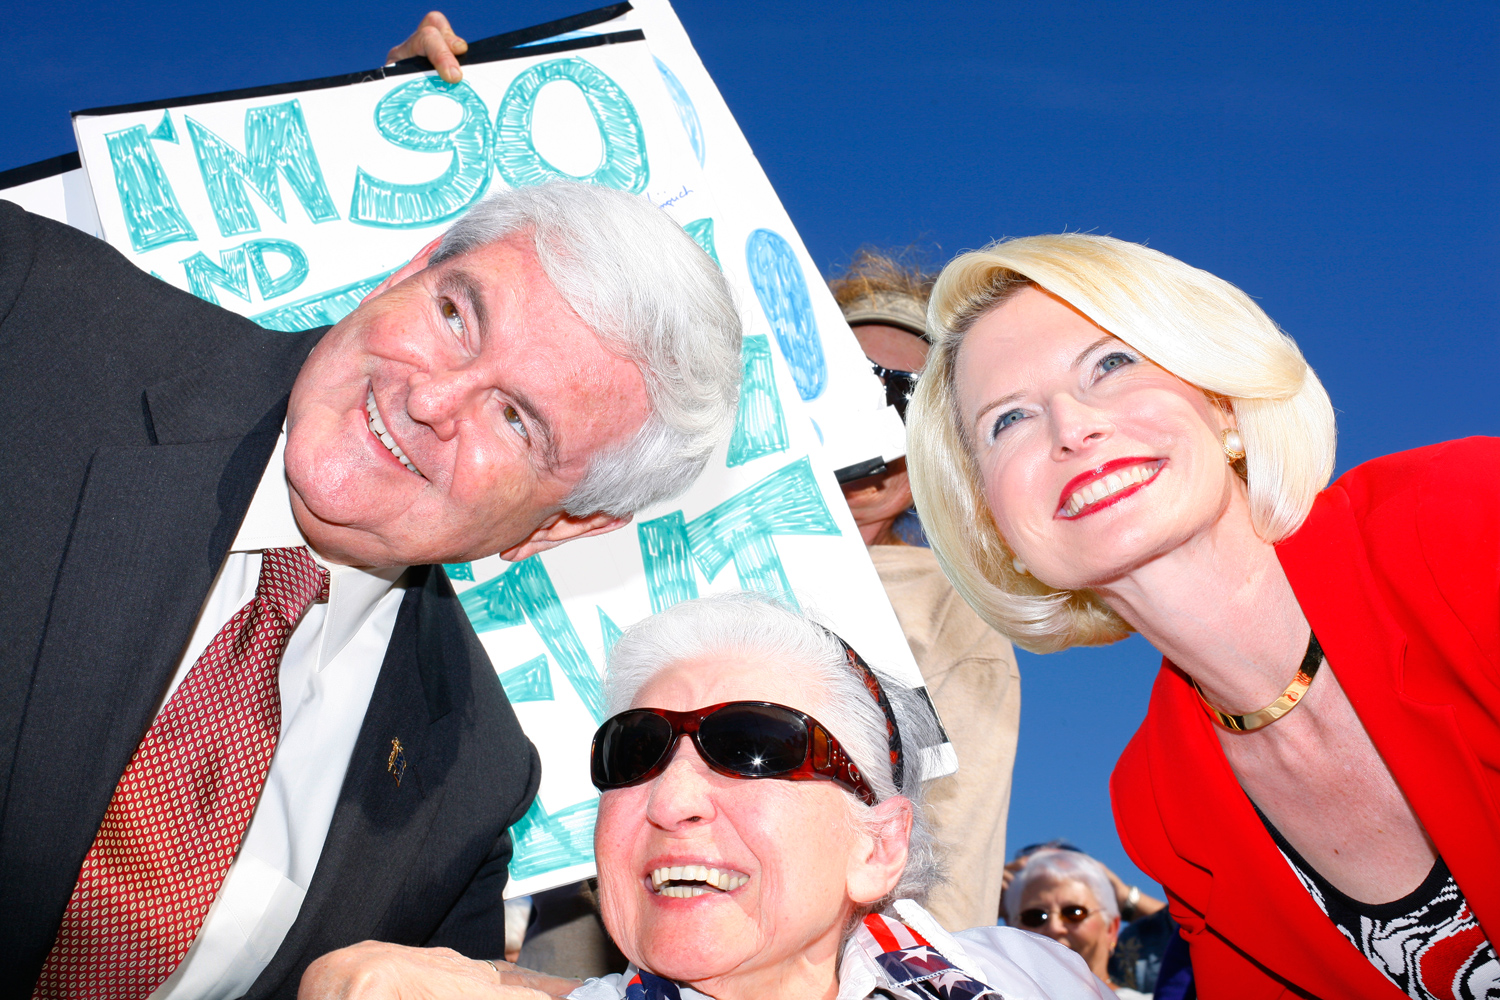 Newt and Callista Gingrich pose for photos during a rally at The Villages, Fla., January 29, 2012.